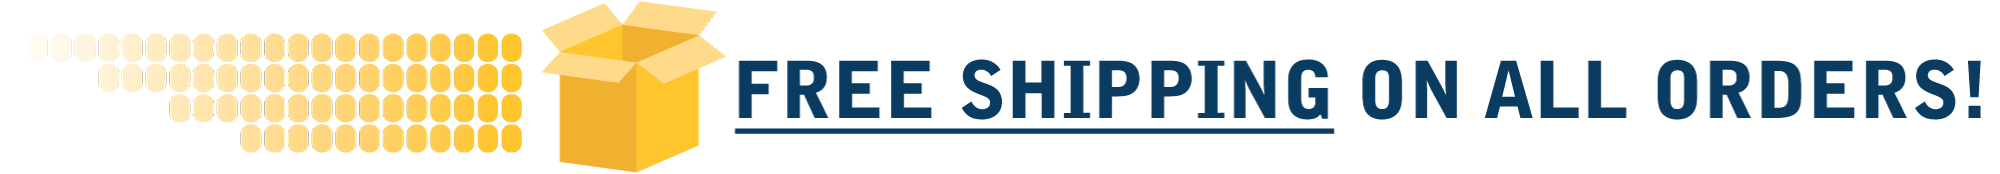 free-shipping-banner.png